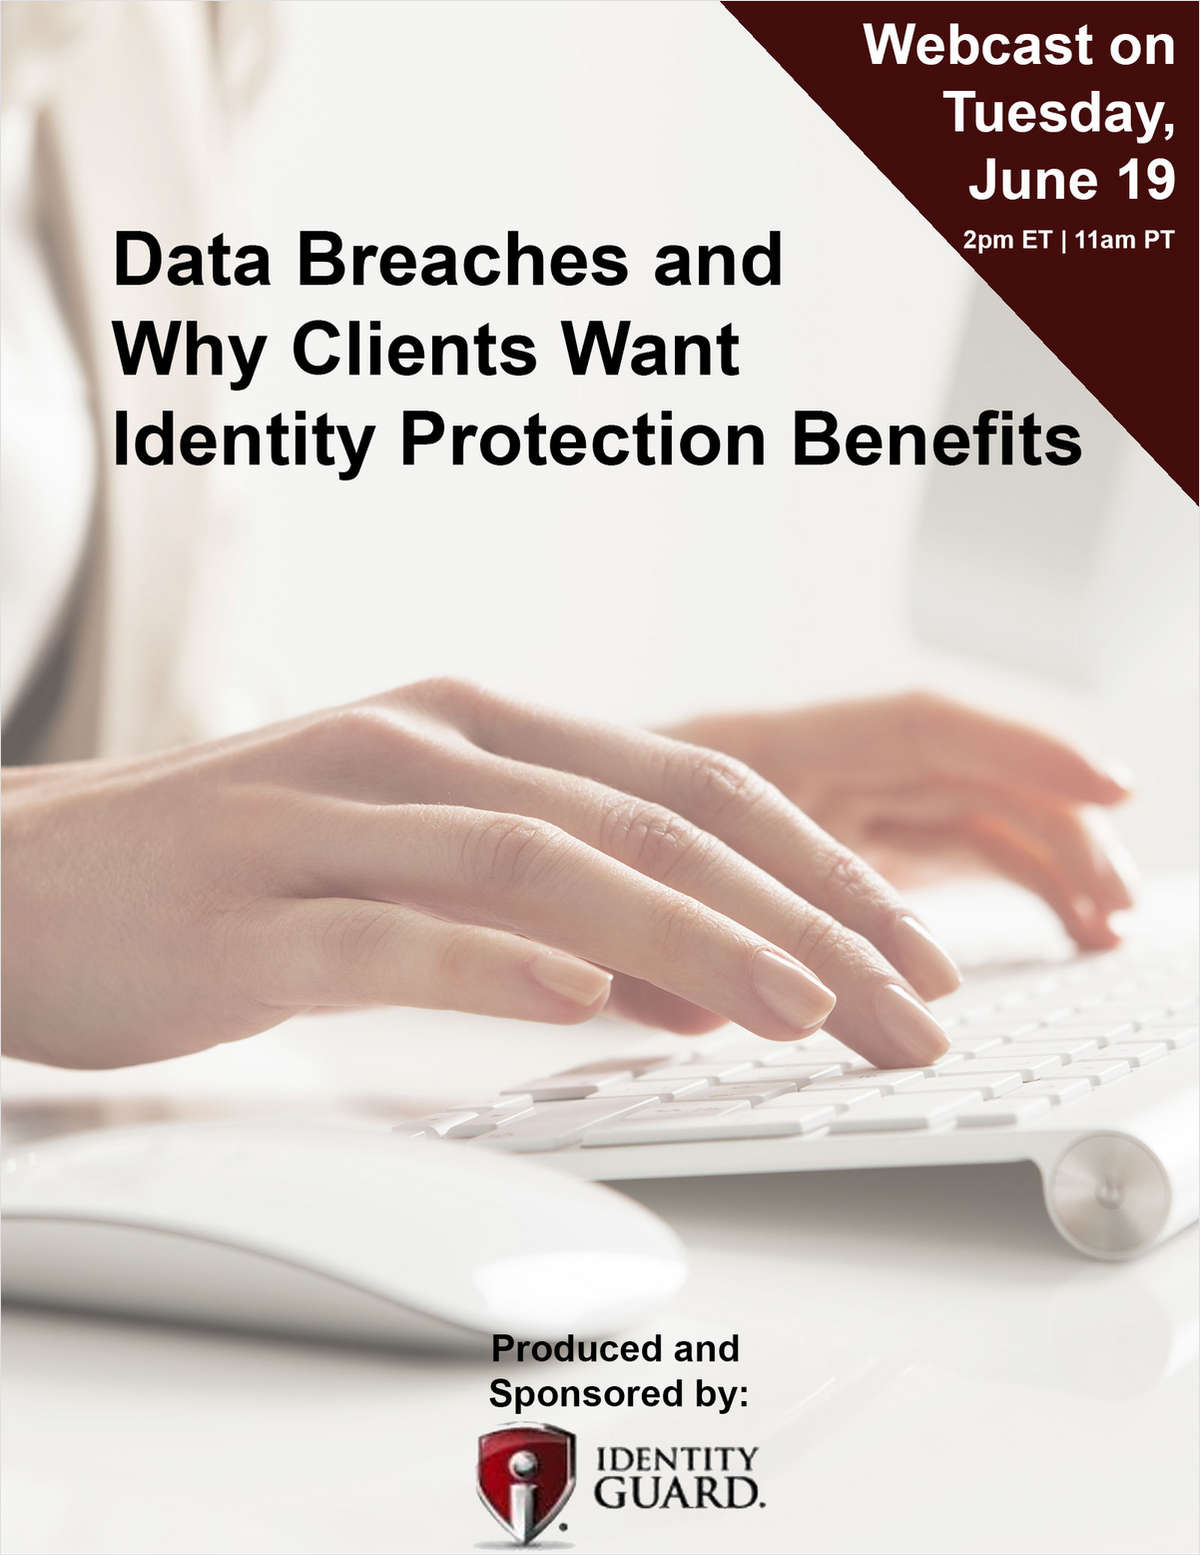 Data Breaches and Why Clients Want Identity Protection Benefits